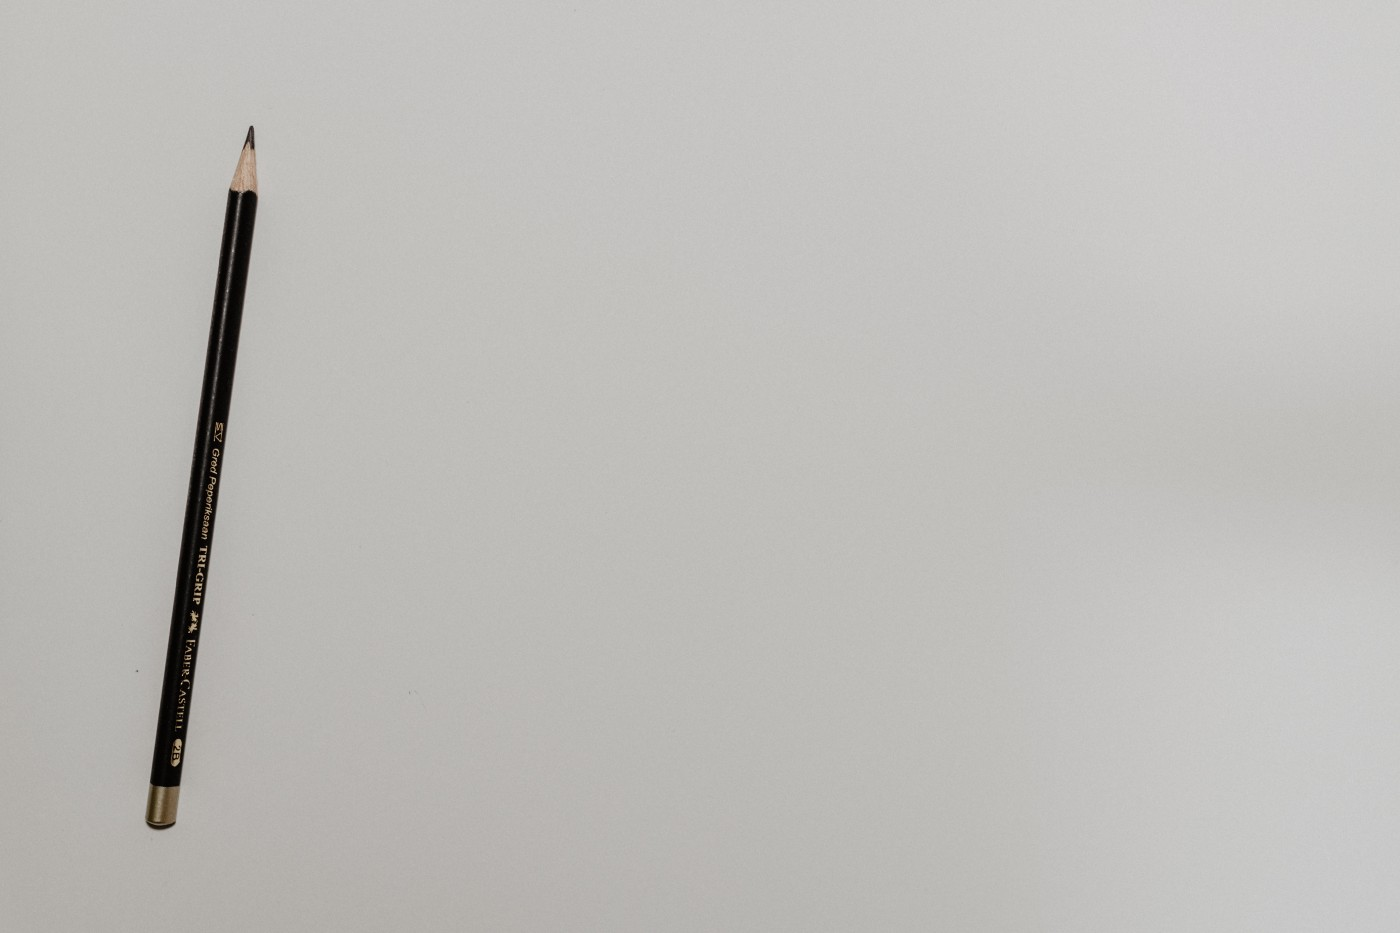 A black pencil on a white background